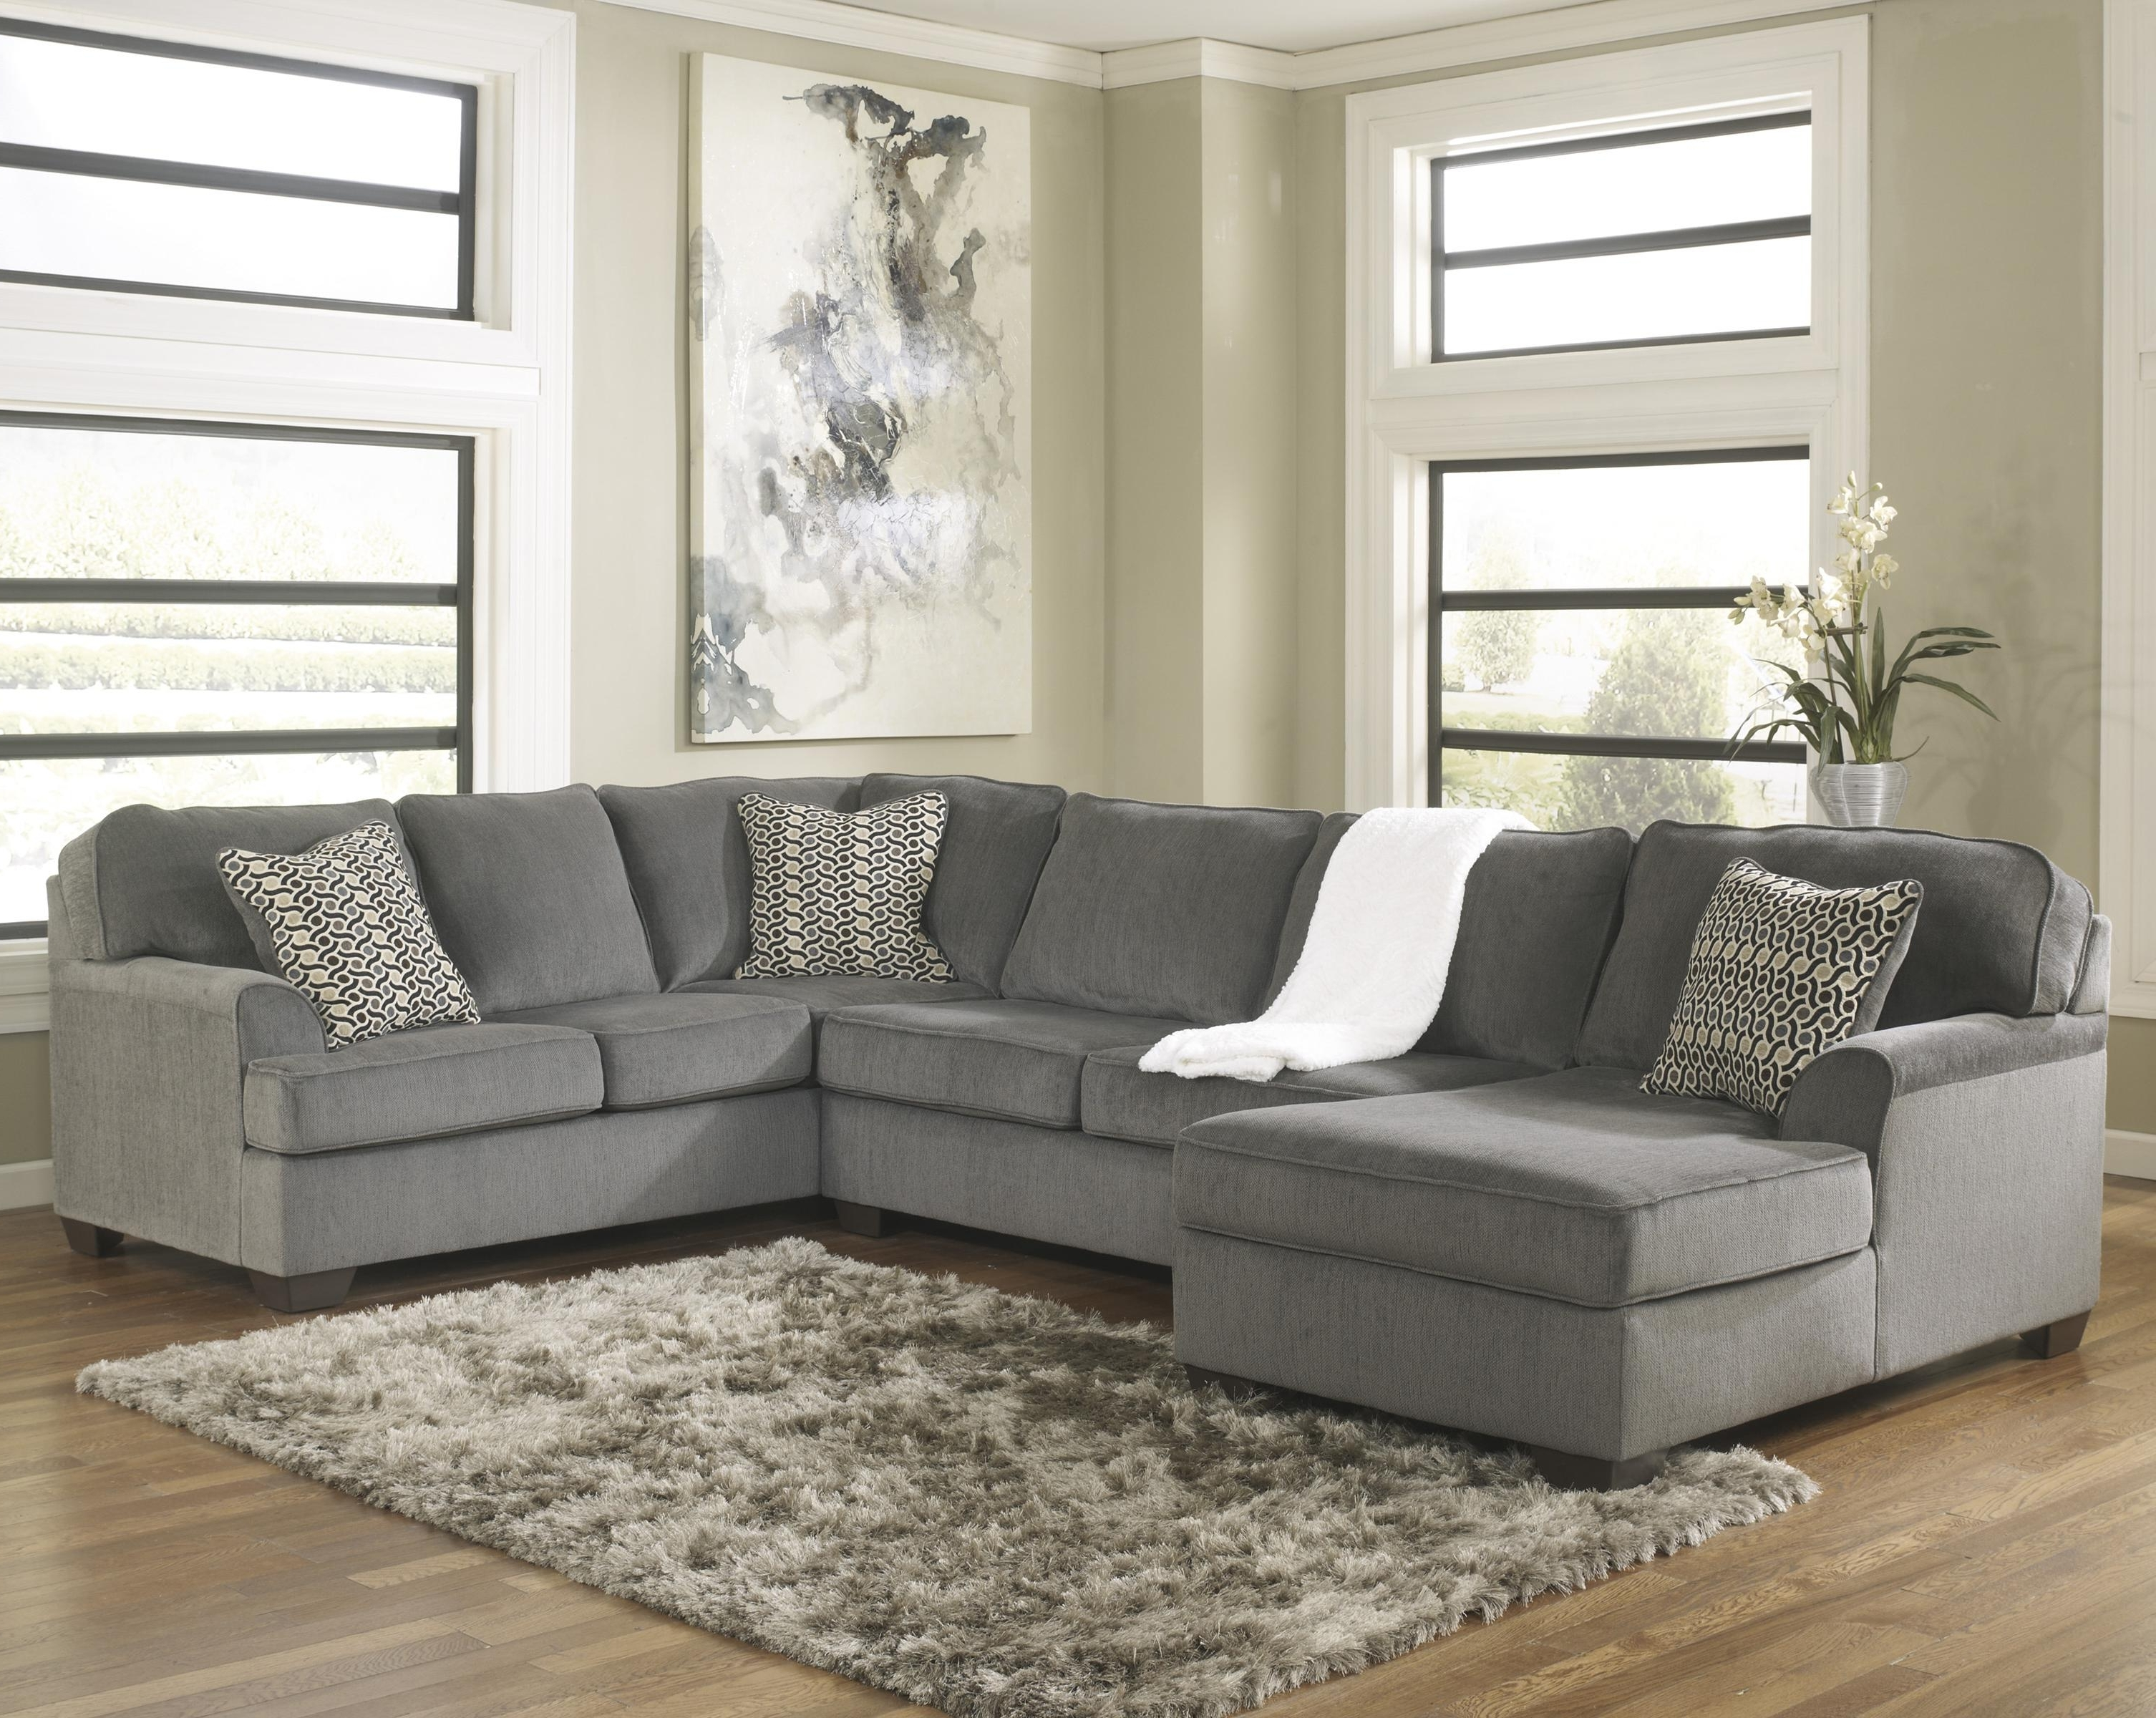 Ashley Furniture Sectional Sofas – Mforum Pertaining To Fashionable 10X8 Sectional Sofas (Gallery 19 of 20)